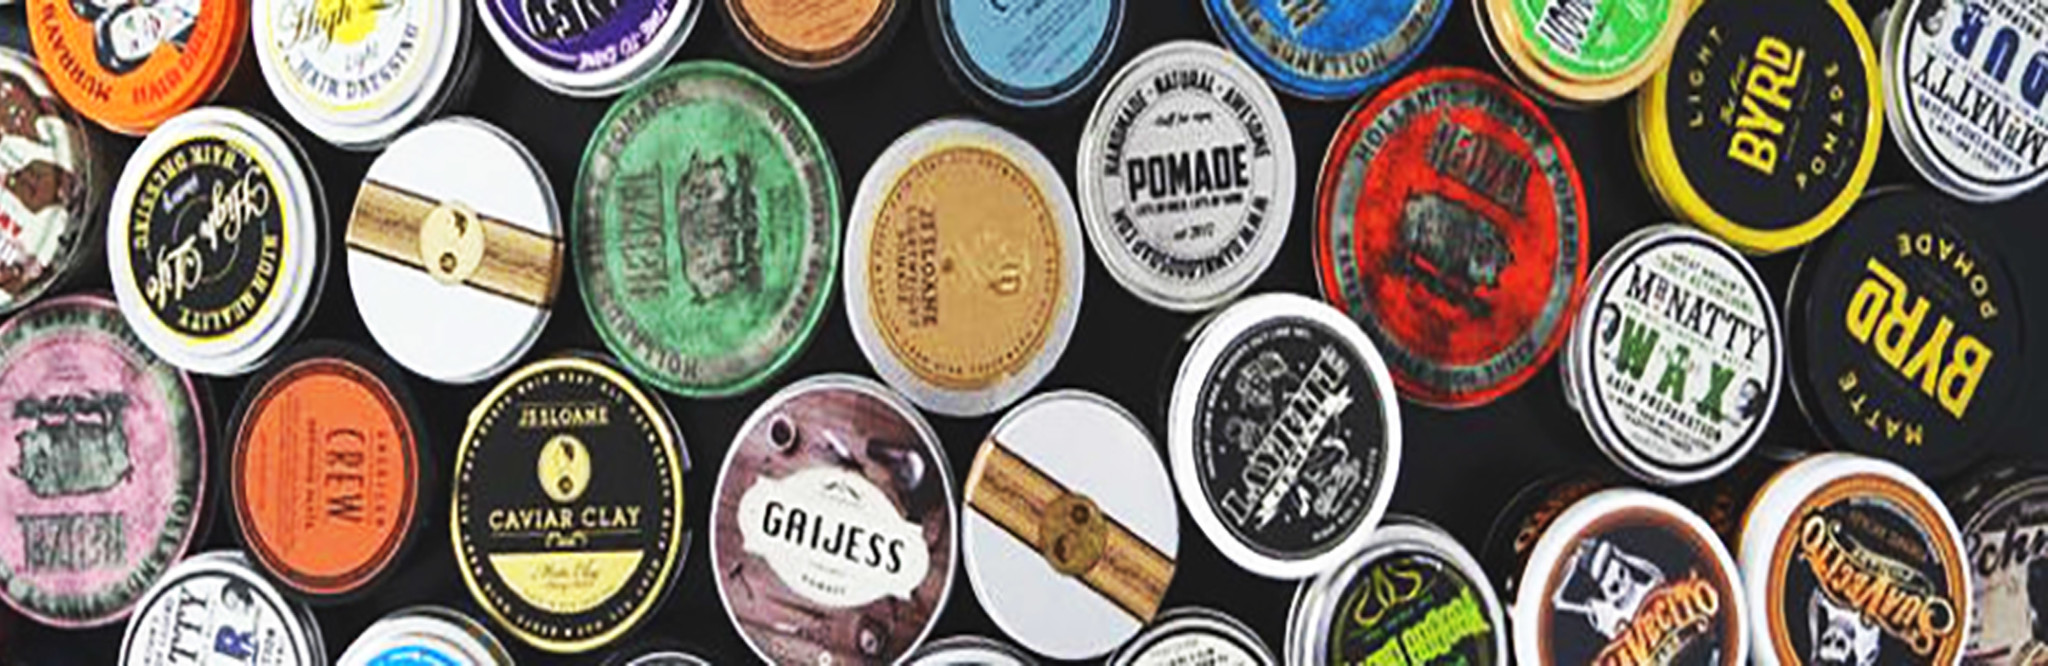 Top 10 populairste pomades